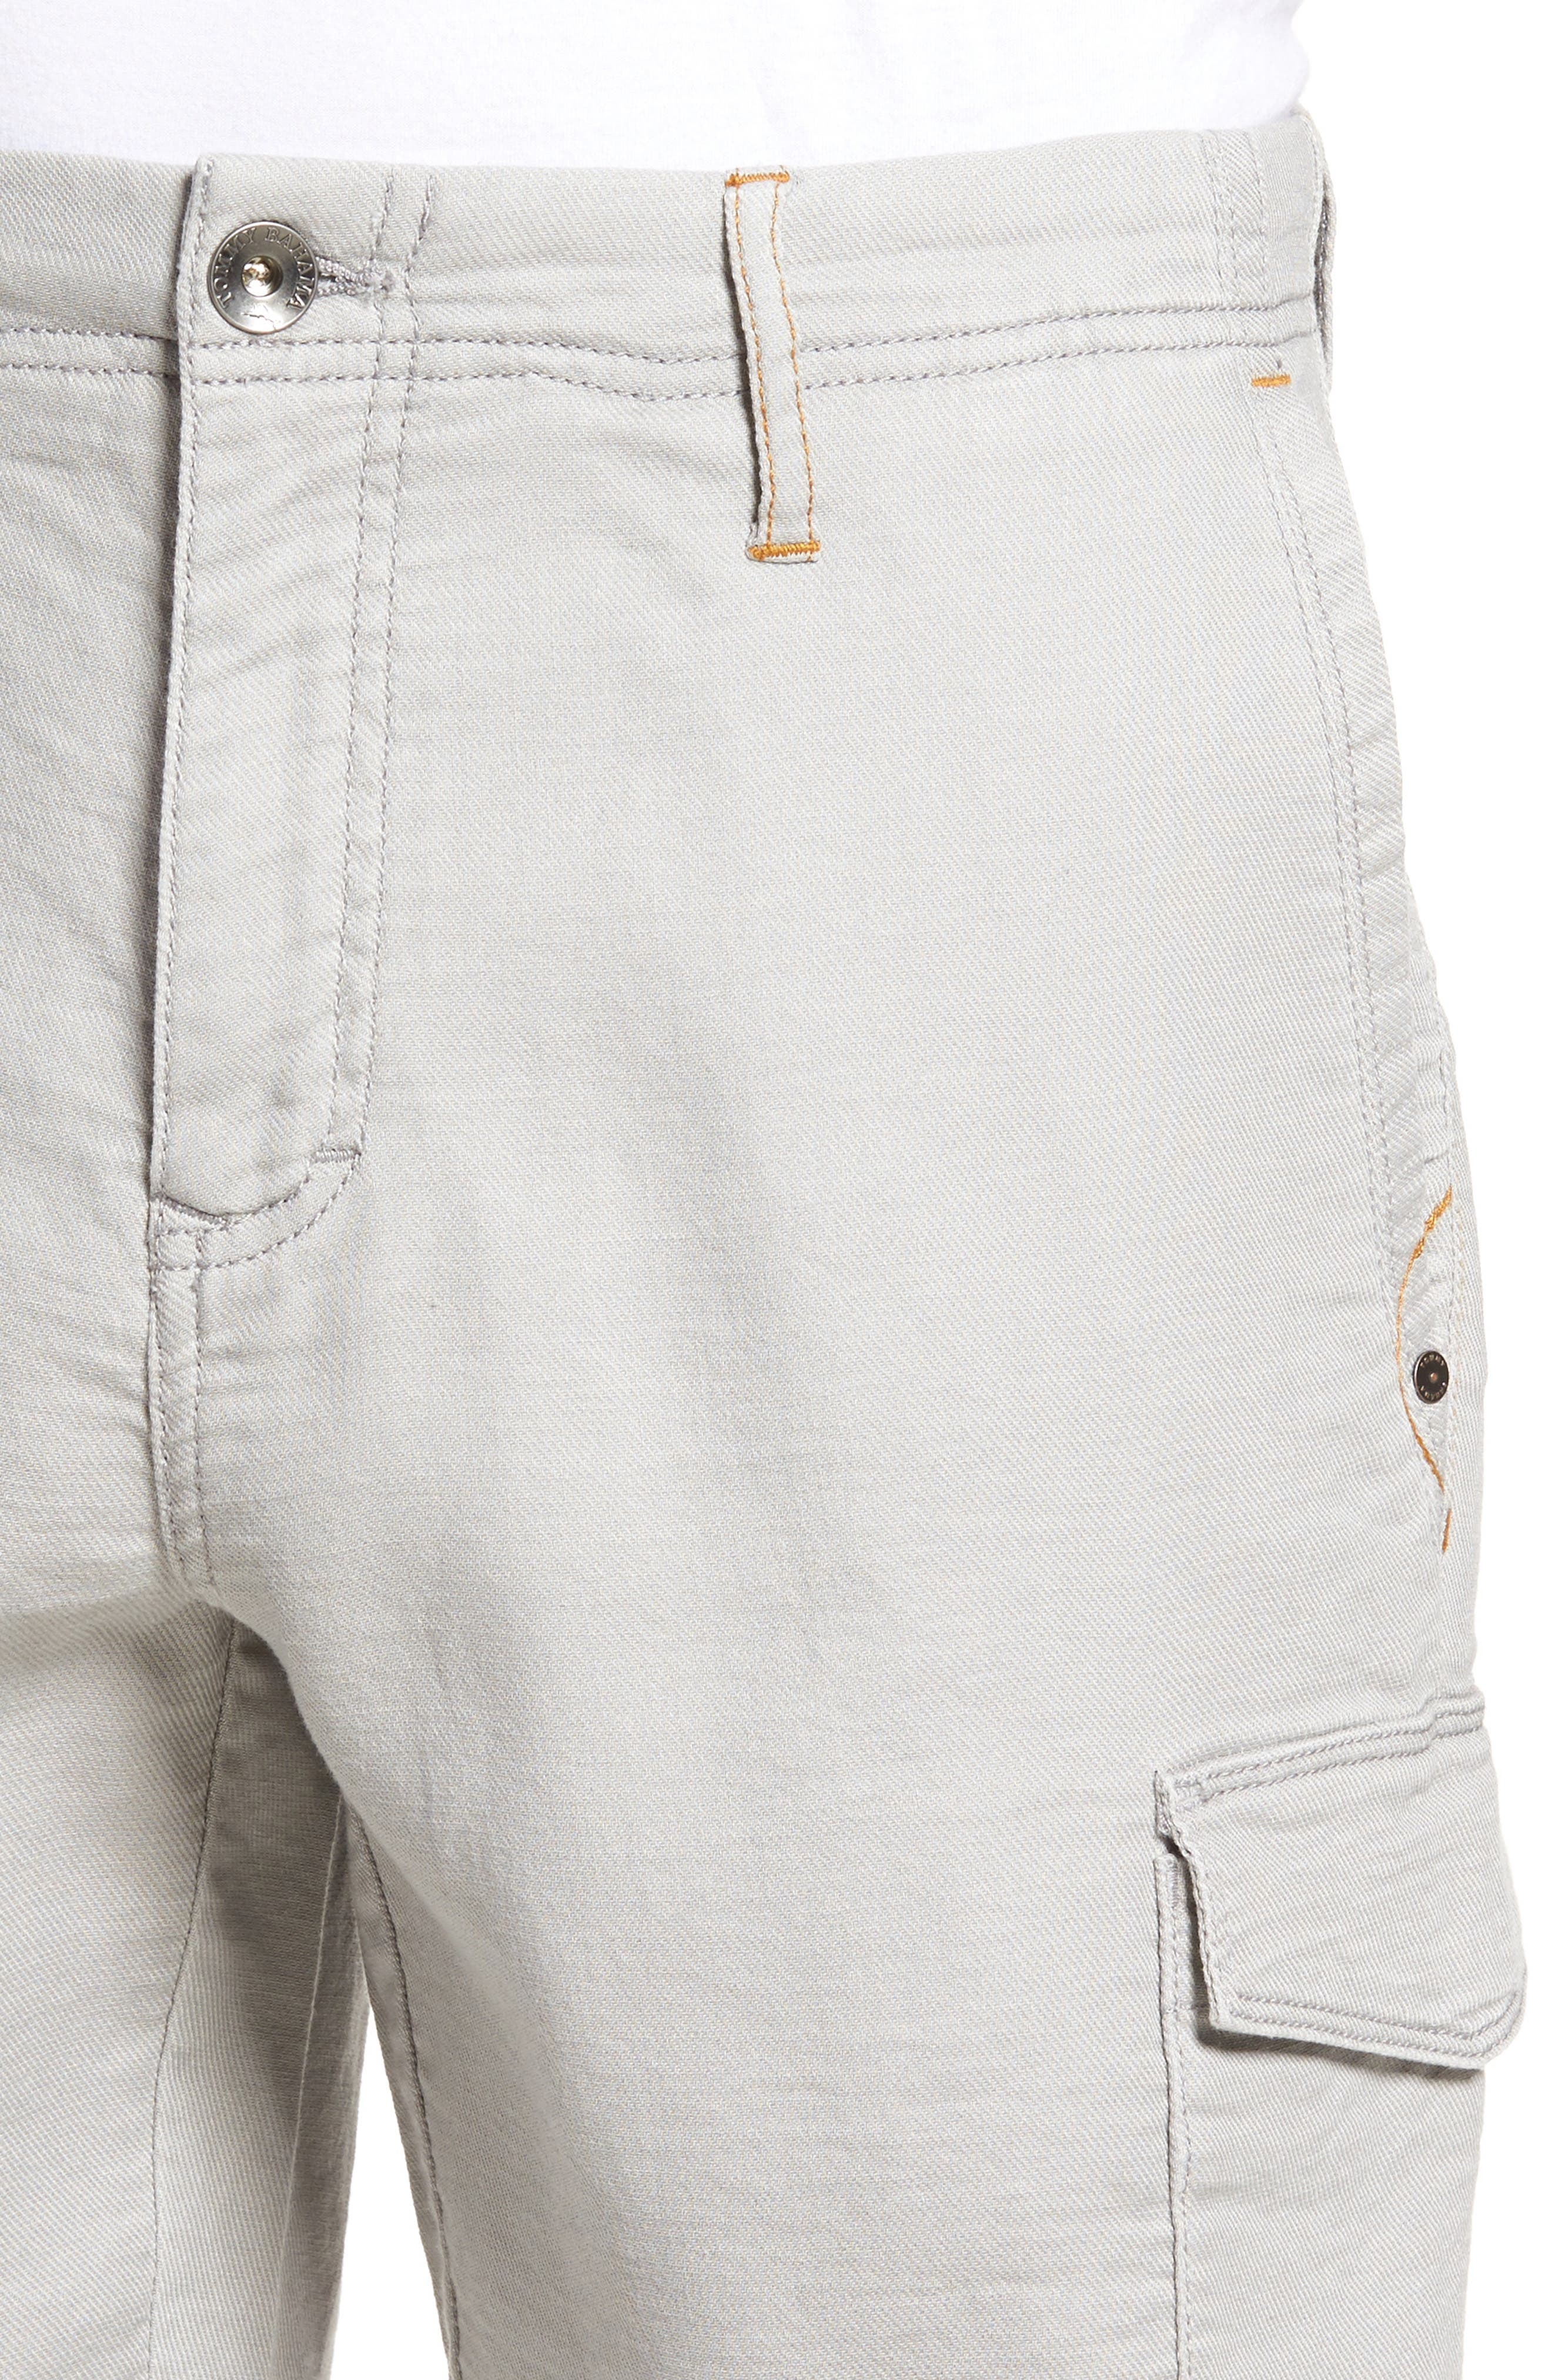 Edgewood Cargo Shorts,                             Alternate thumbnail 4, color,                             Argent